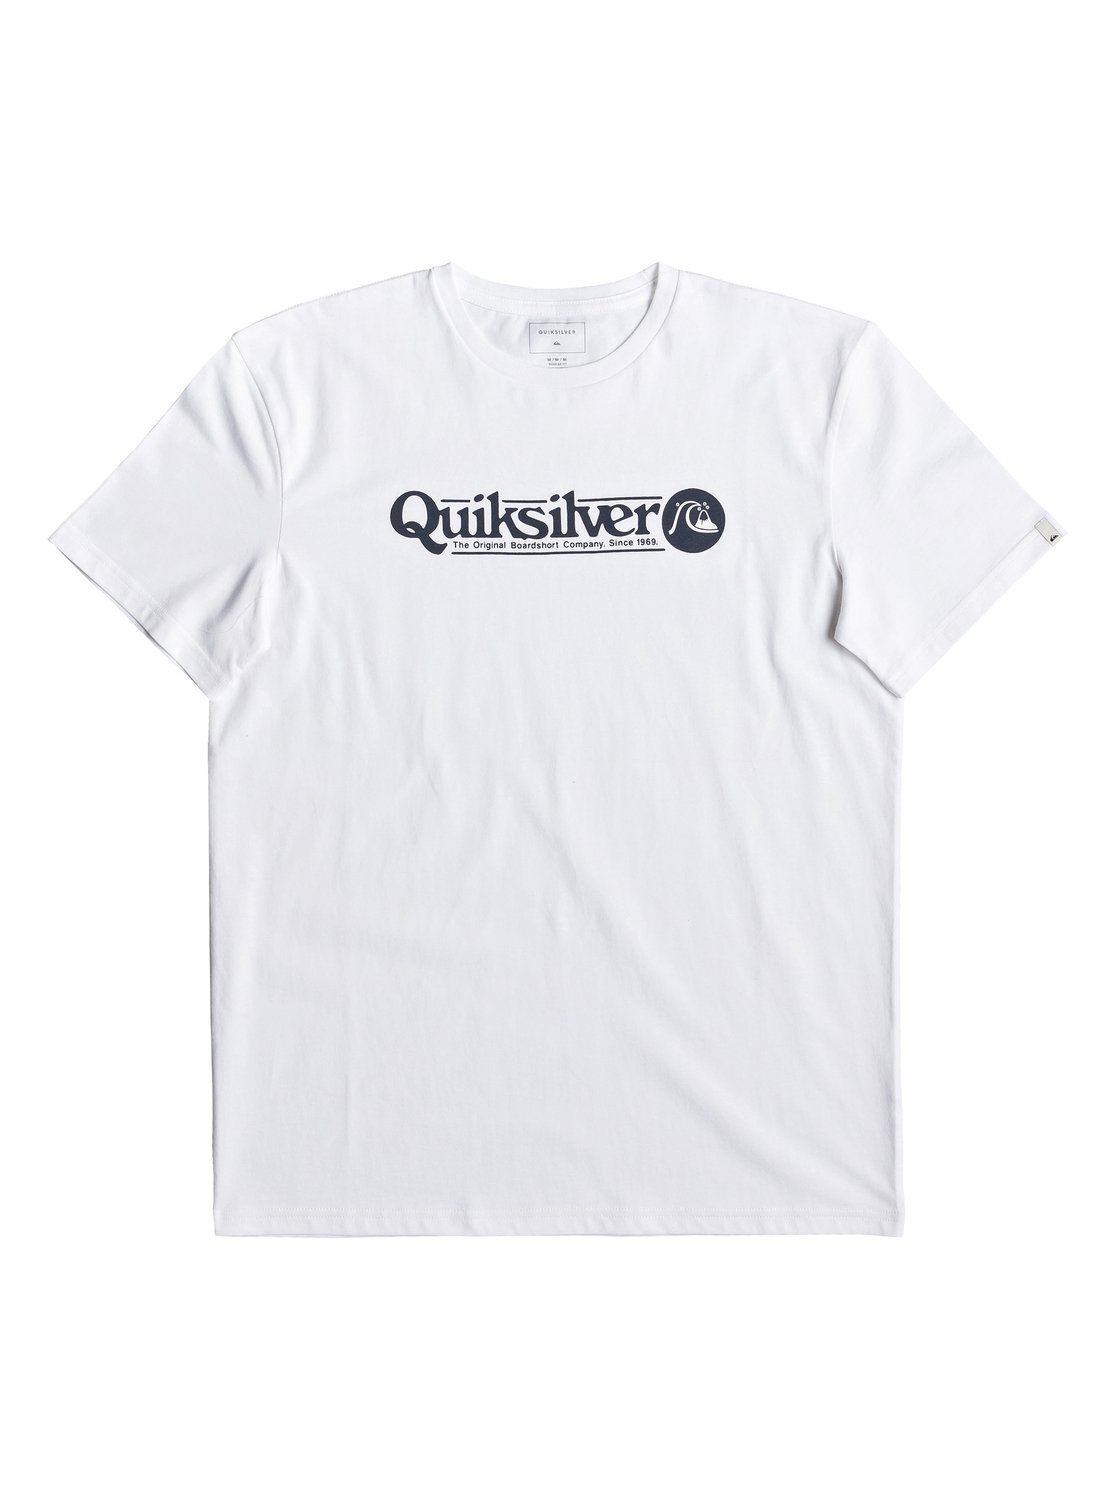 Quiksilver-Art-Tickle-T-shirt-pour-Homme-EQYZT05259 miniature 8